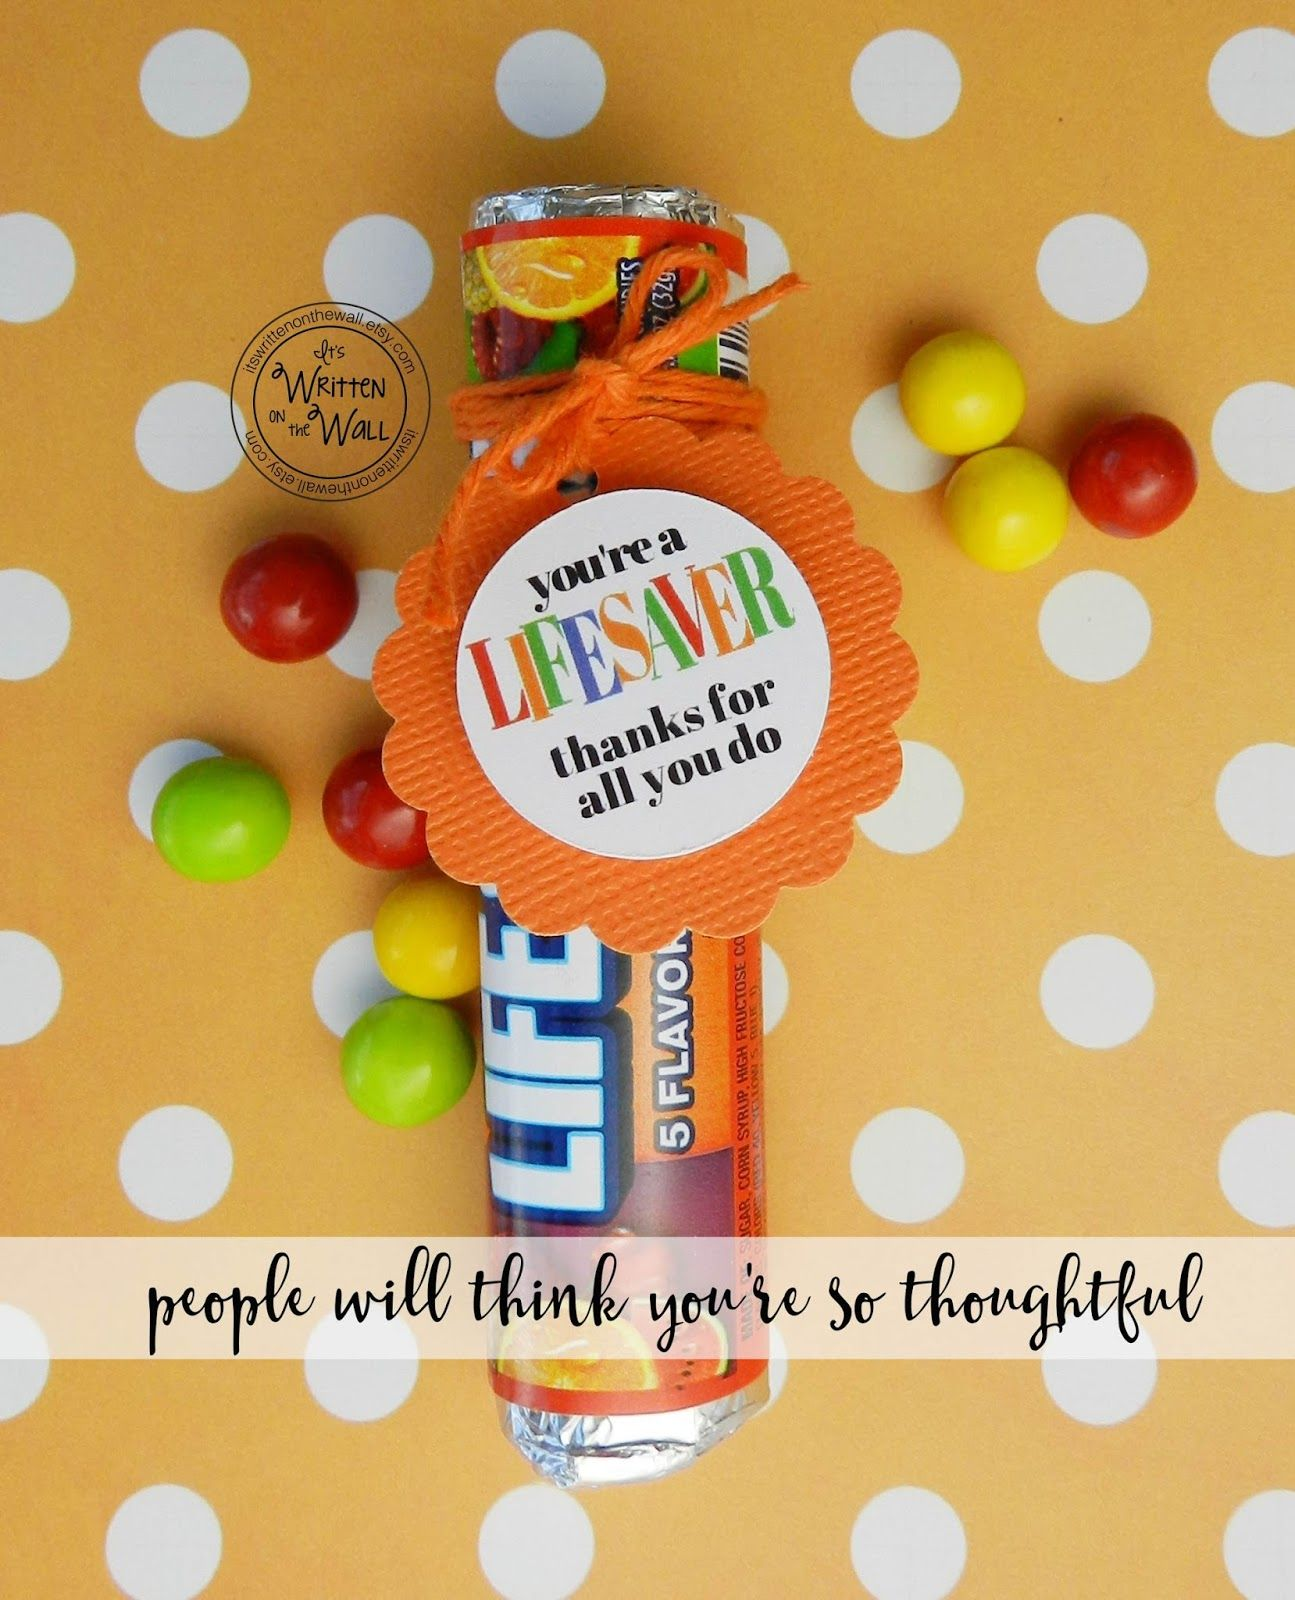 you're a lifesaver—thanks for all you do! fun appreciation gifts